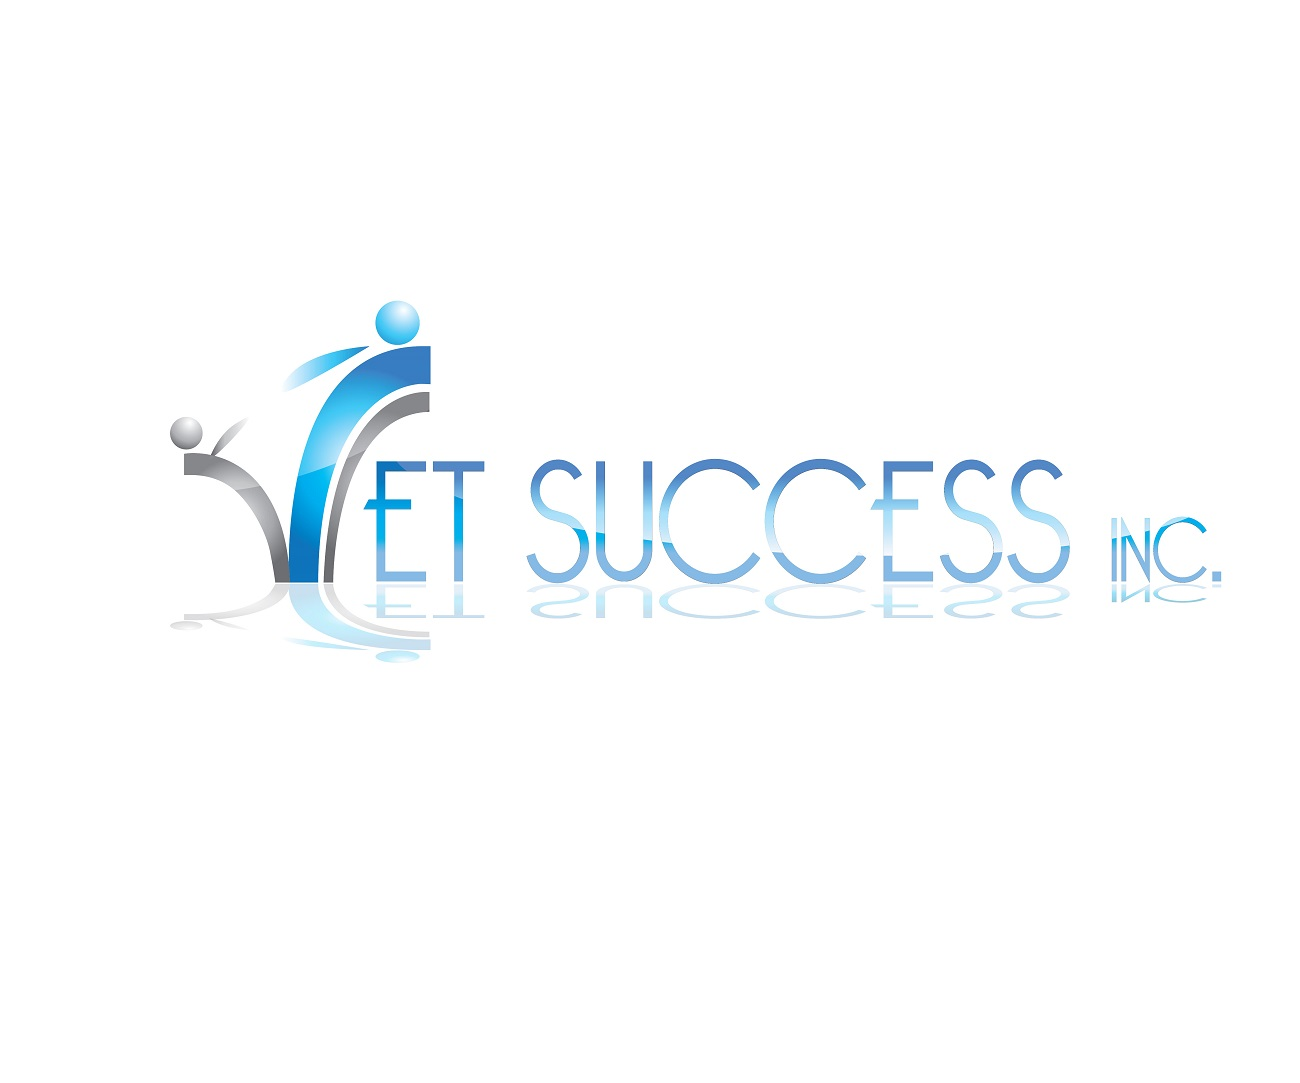 Logo Design by jhunzkie24 - Entry No. 52 in the Logo Design Contest Imaginative Logo Design for Vet Success Inc..